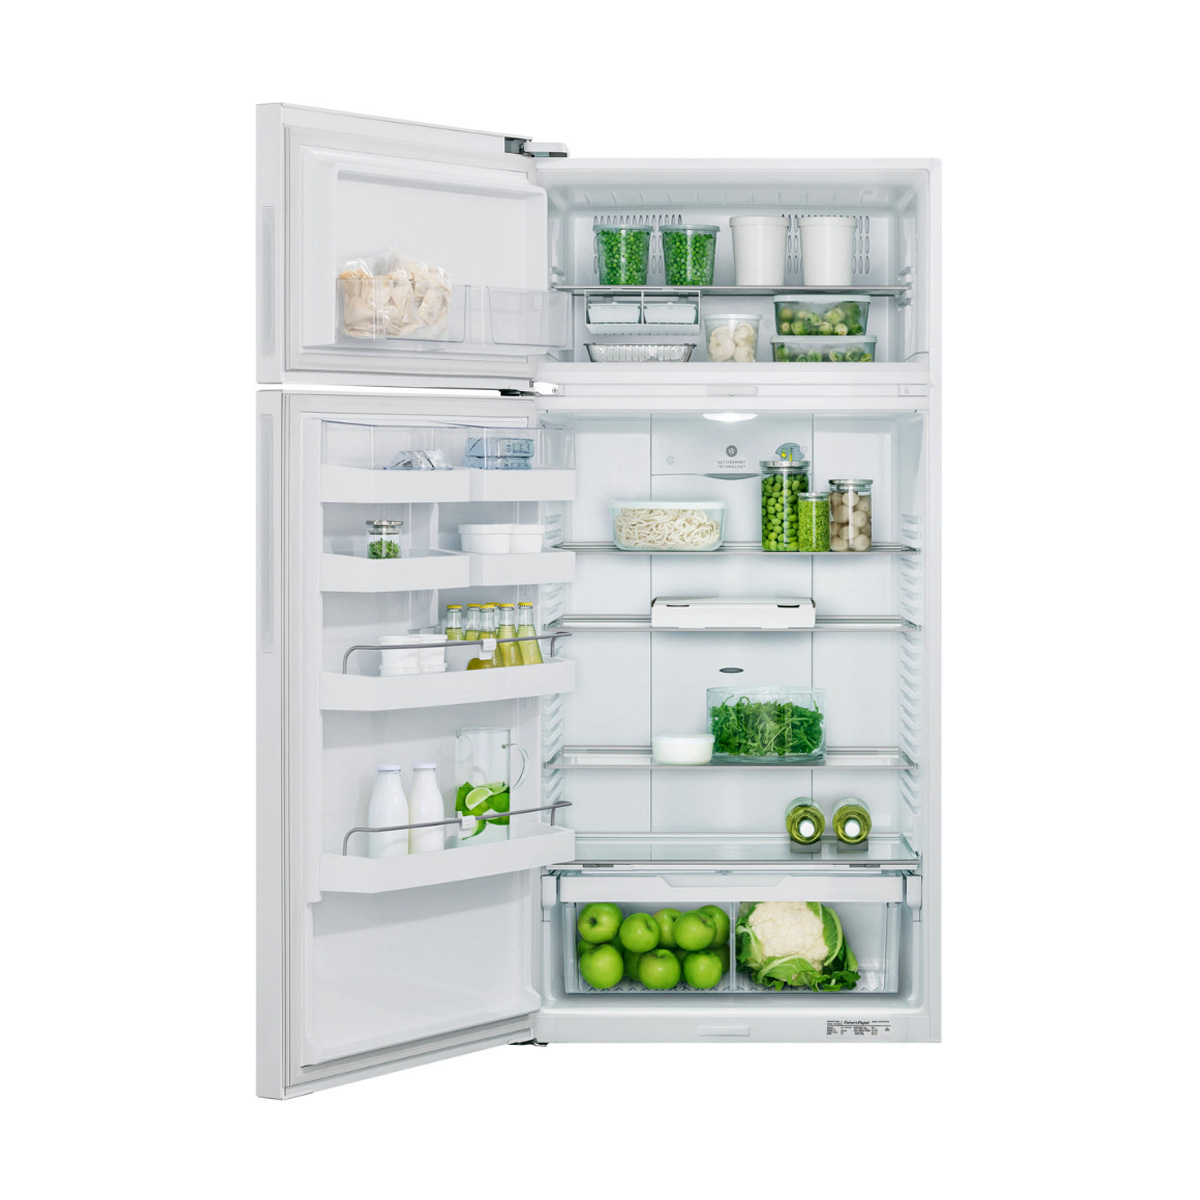 Fisher & Paykel RF521TLPW6 517L Top Mount Fridge 41116